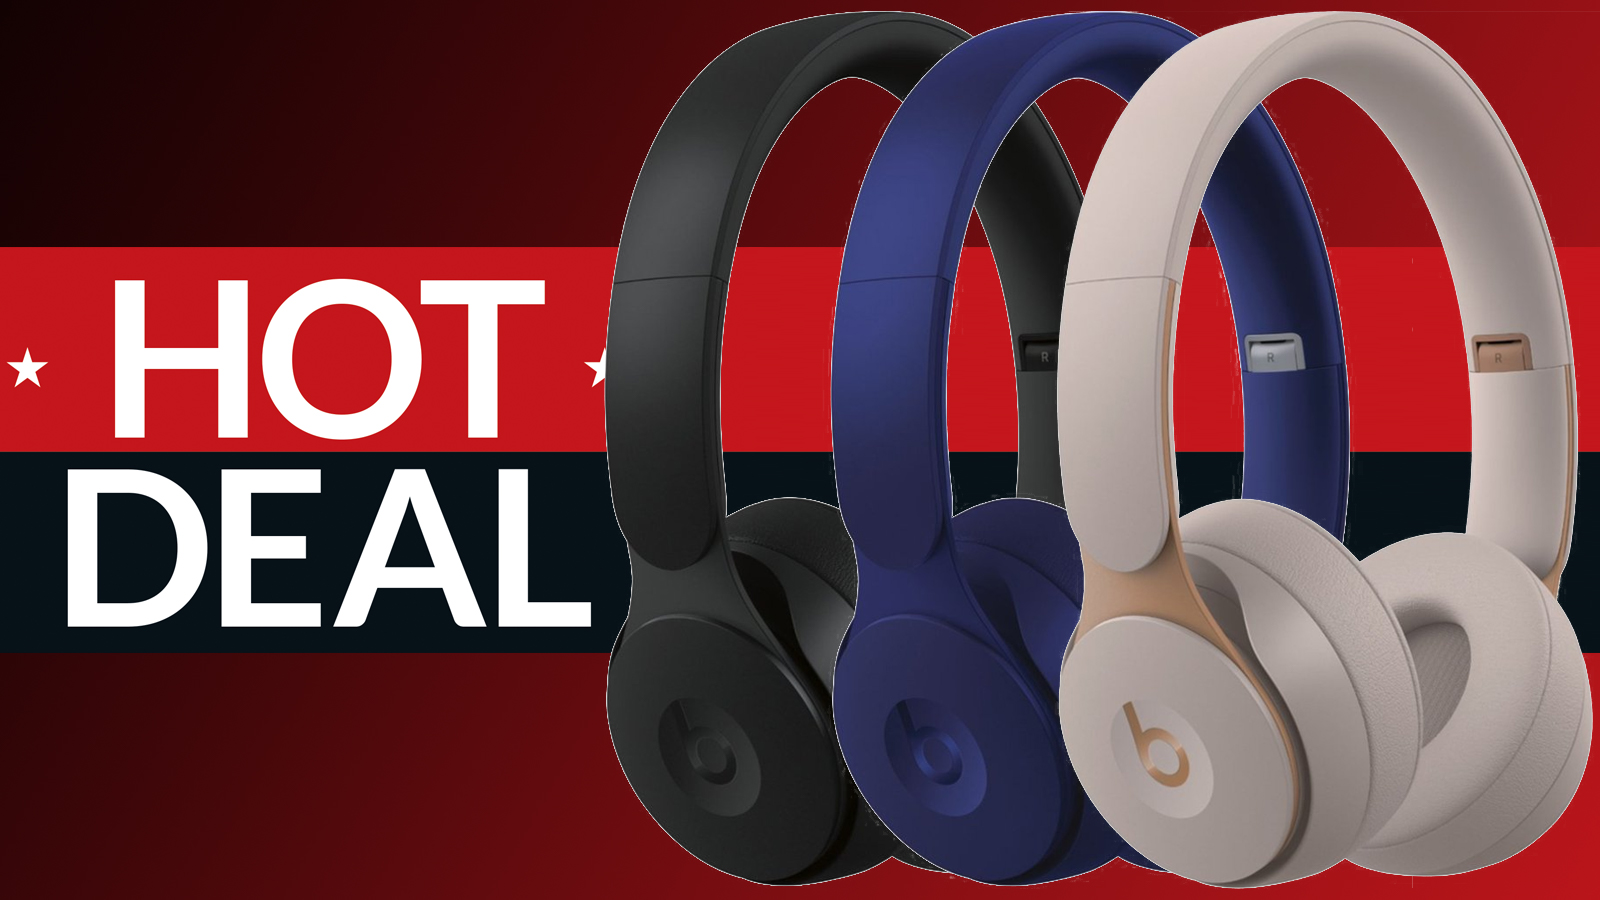 True Wireless Headphones Deal At Best Buy Takes 50 Off Beats Solo Pro Wireless Headphones For A Limited Time T3